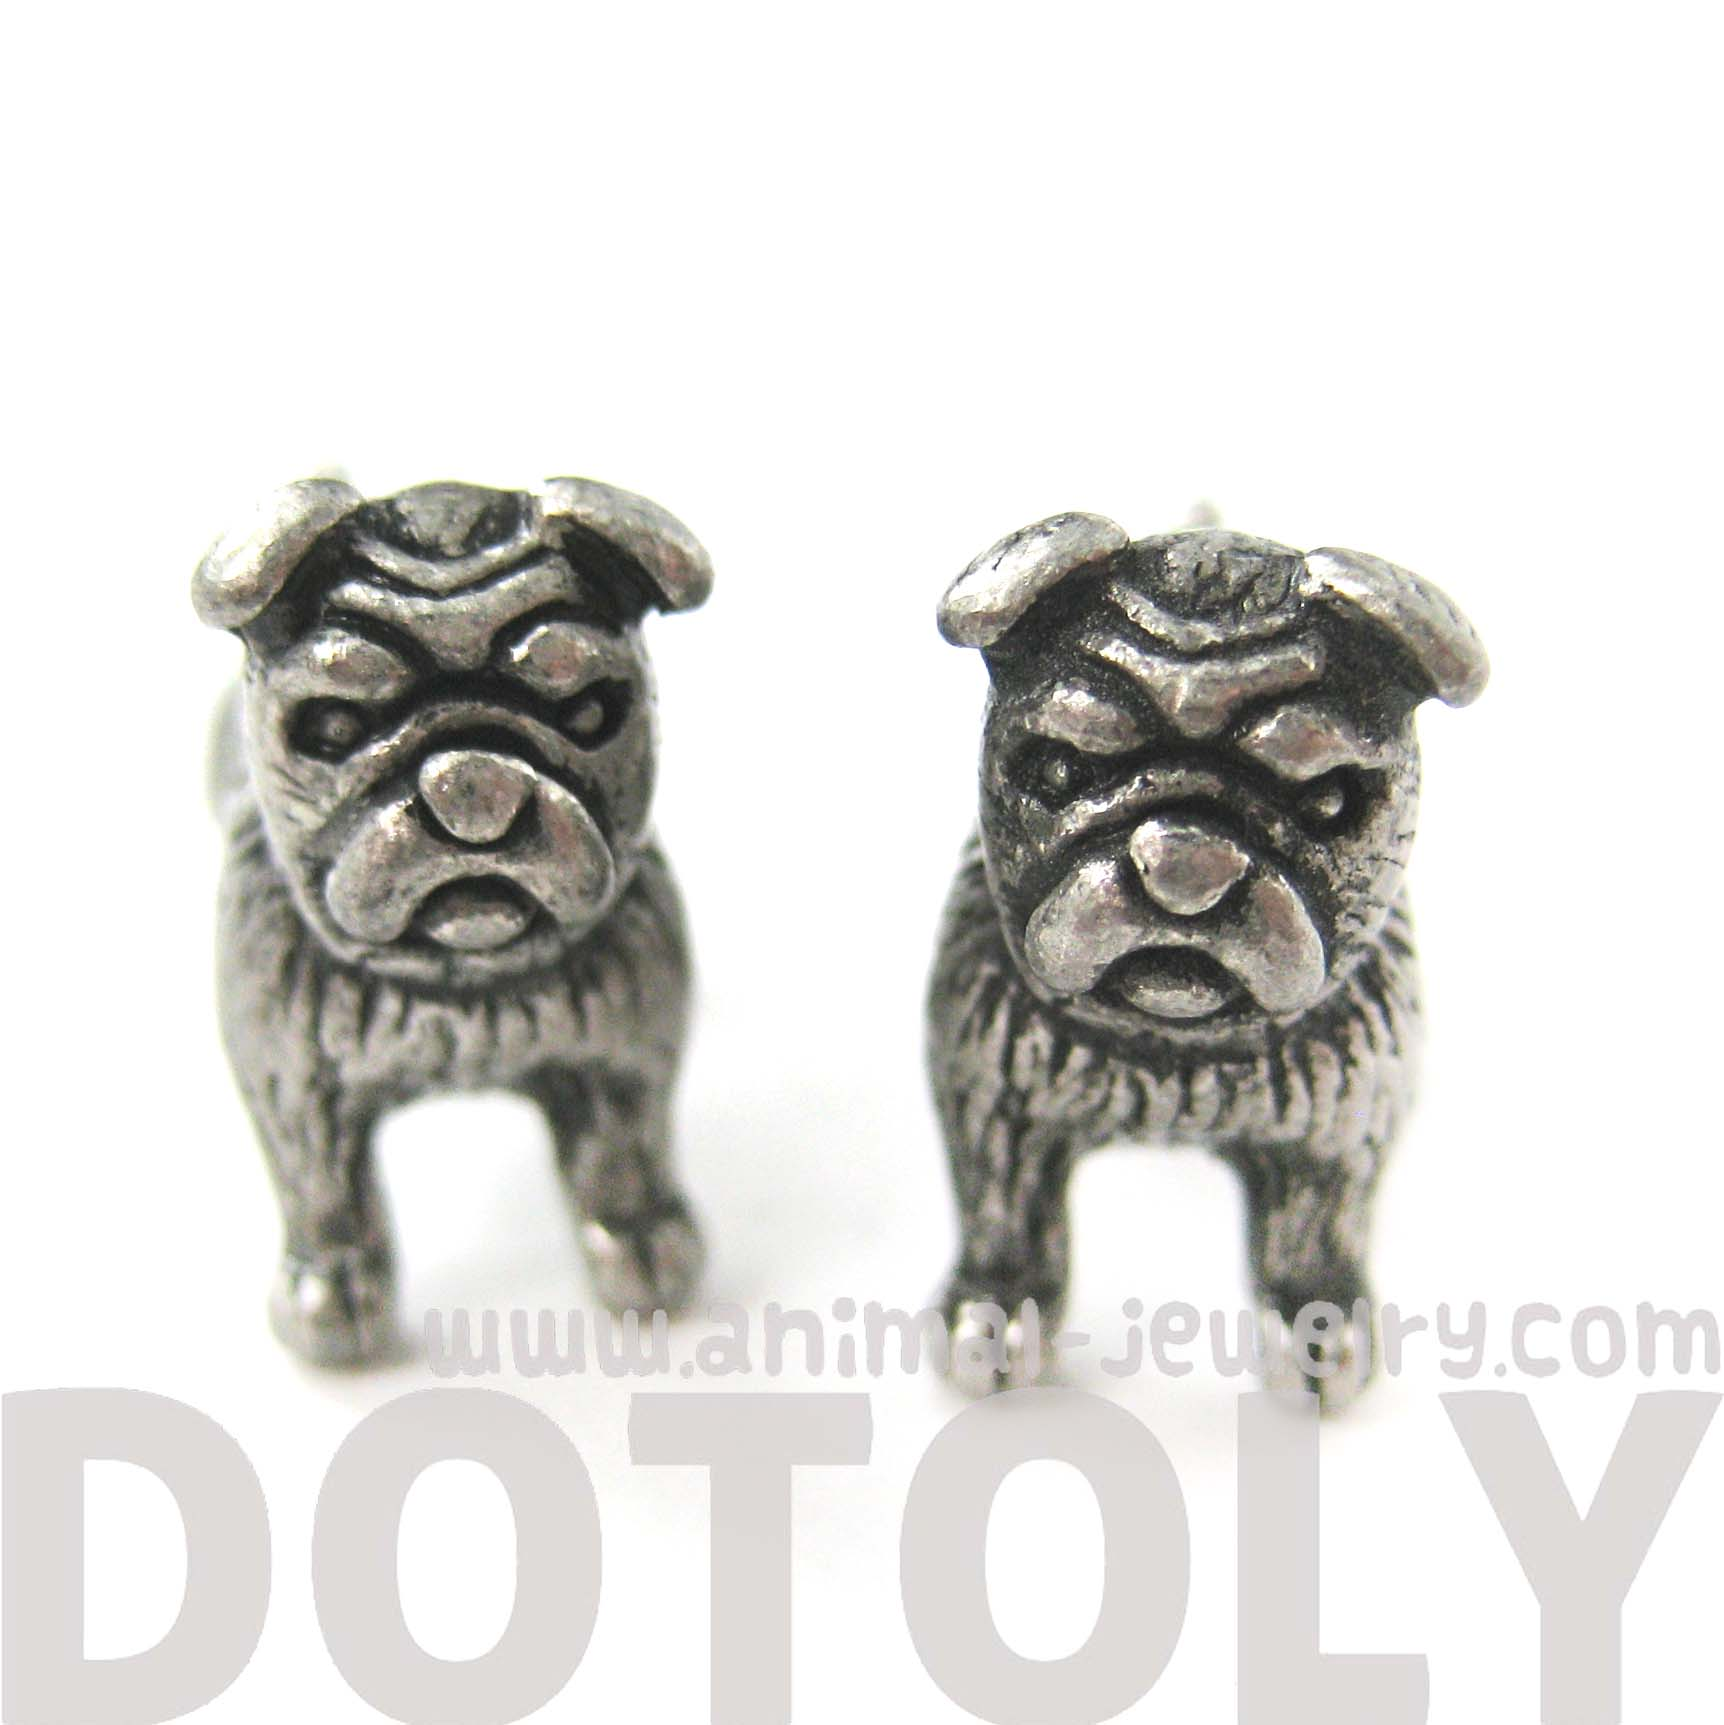 fake-gauge-earrings-realistic-bulldog-puppy-dog-animal-stud-earrings-in-silver